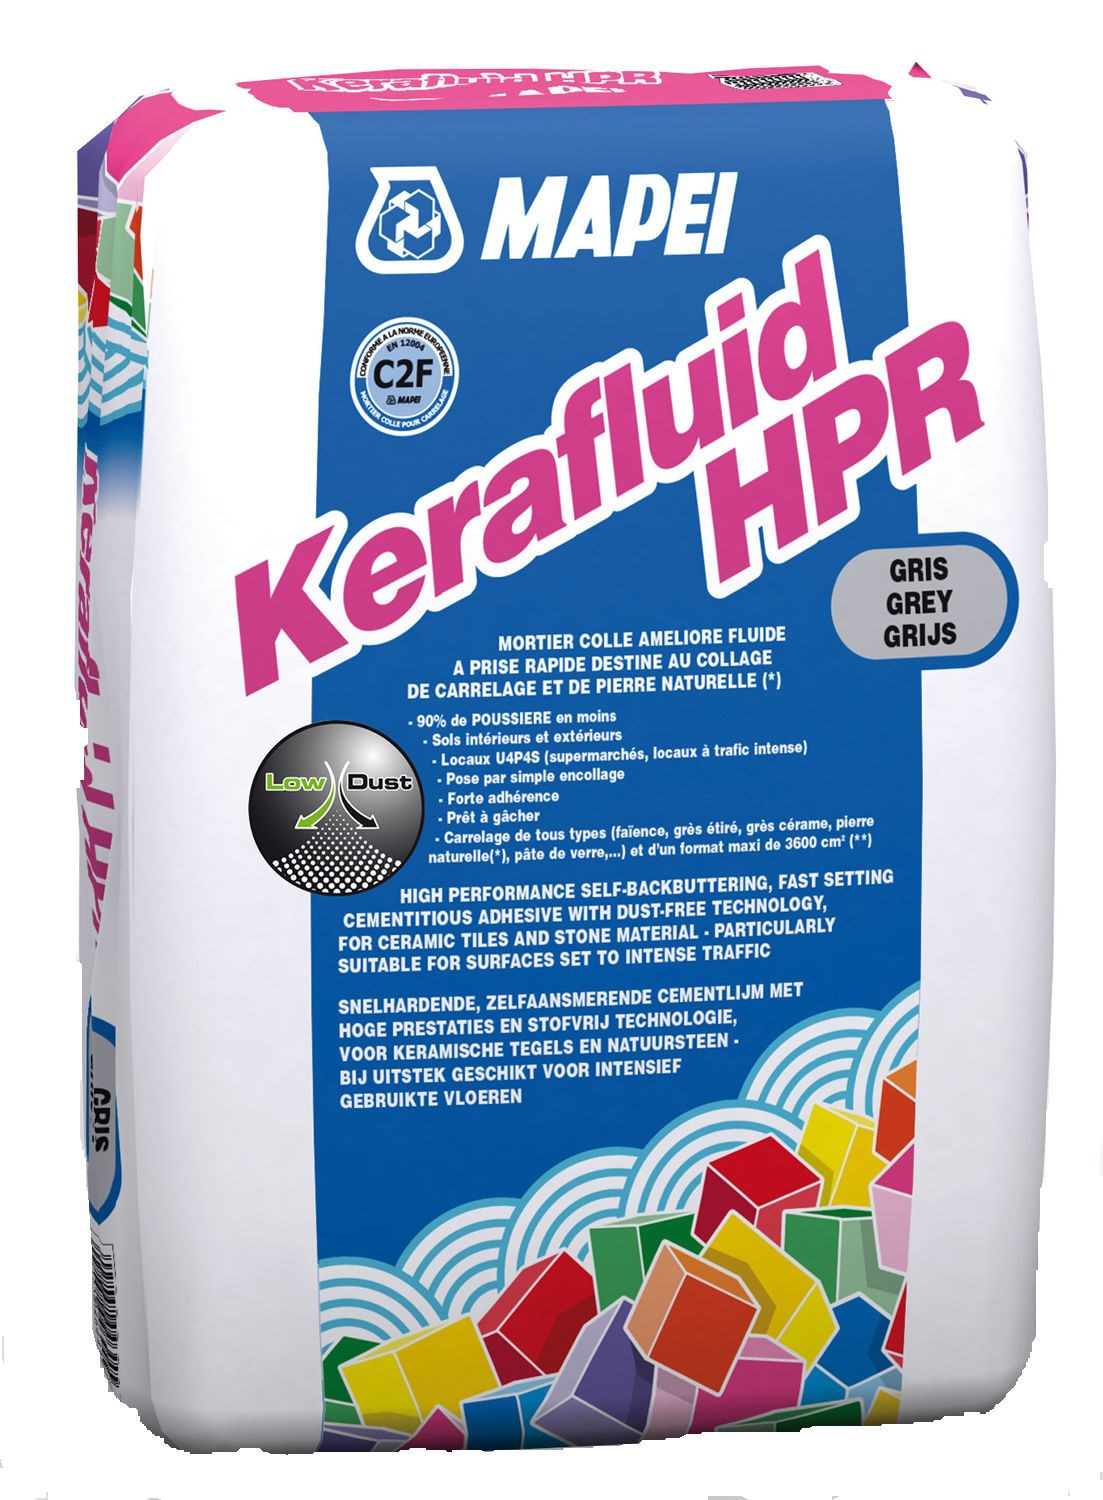 Mortier Colle Carrelage Exterieur Point P Mortier Colle Pour Le Carrelage C2 Kerafluid Hpr Mapei